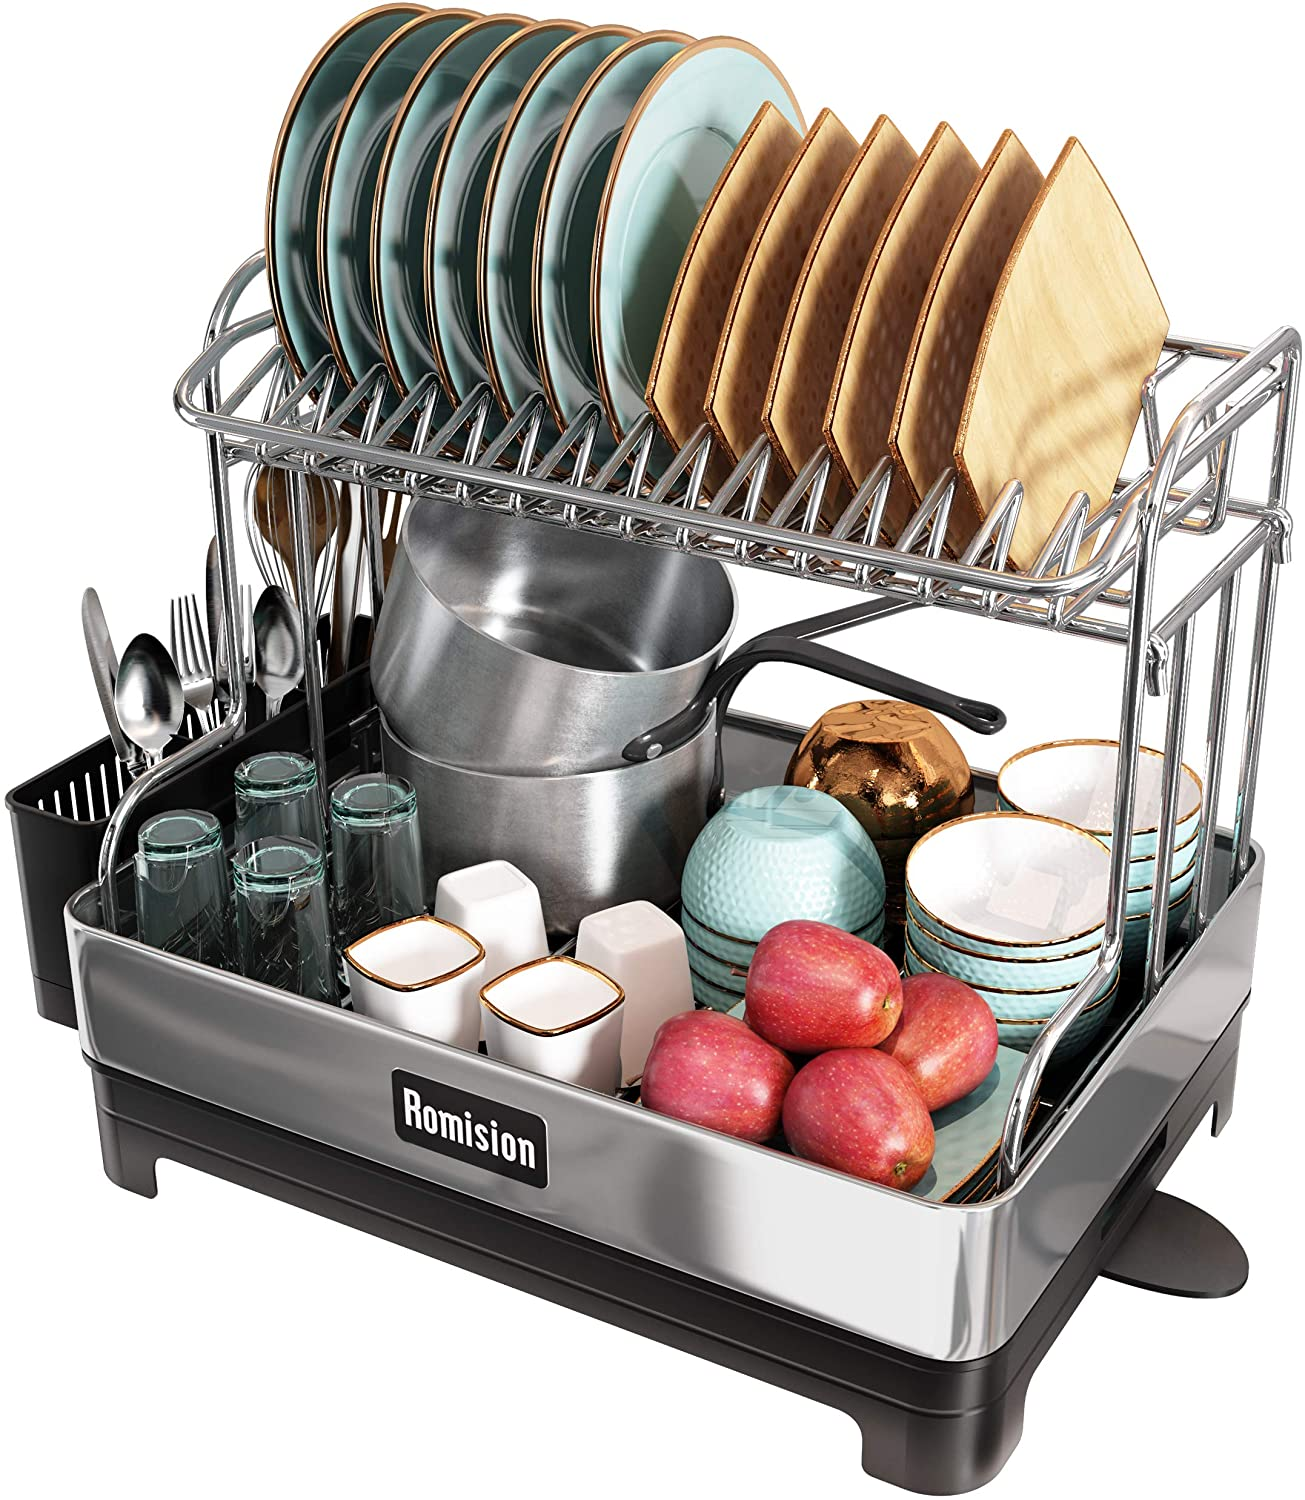 Romision Stainless Steel dish rack